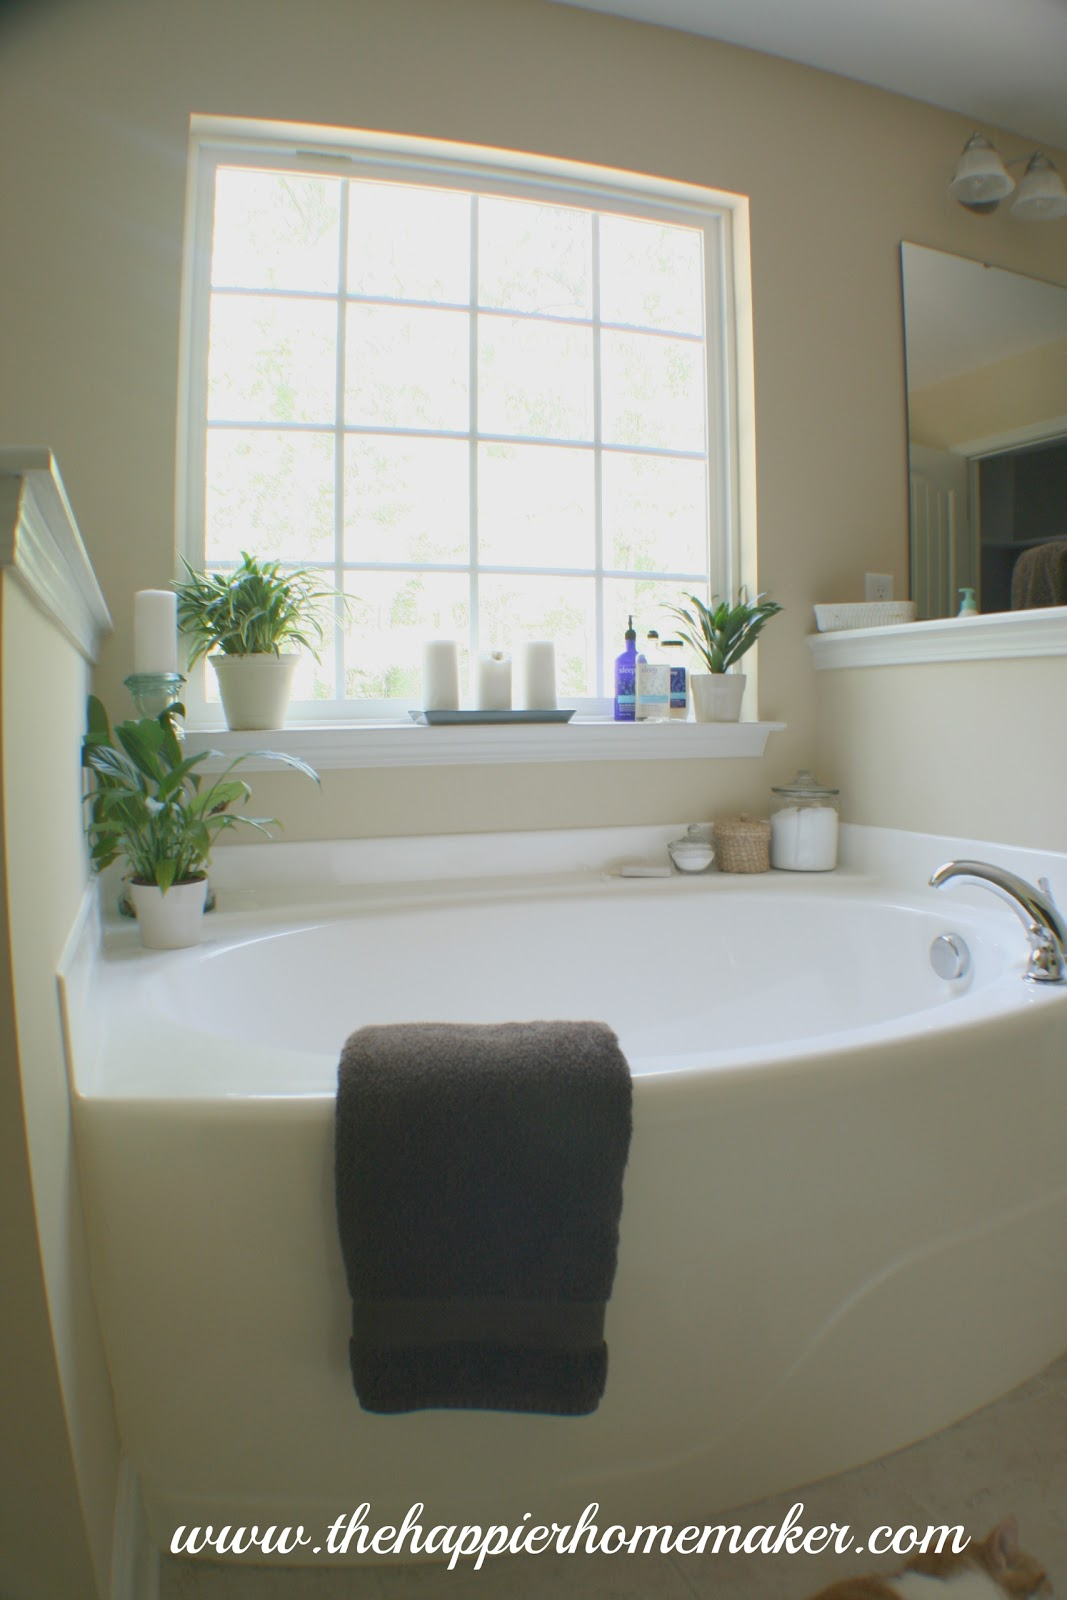 Decorating Around a Bathtub & Decorating Around a Bathtub | The Happier Homemaker